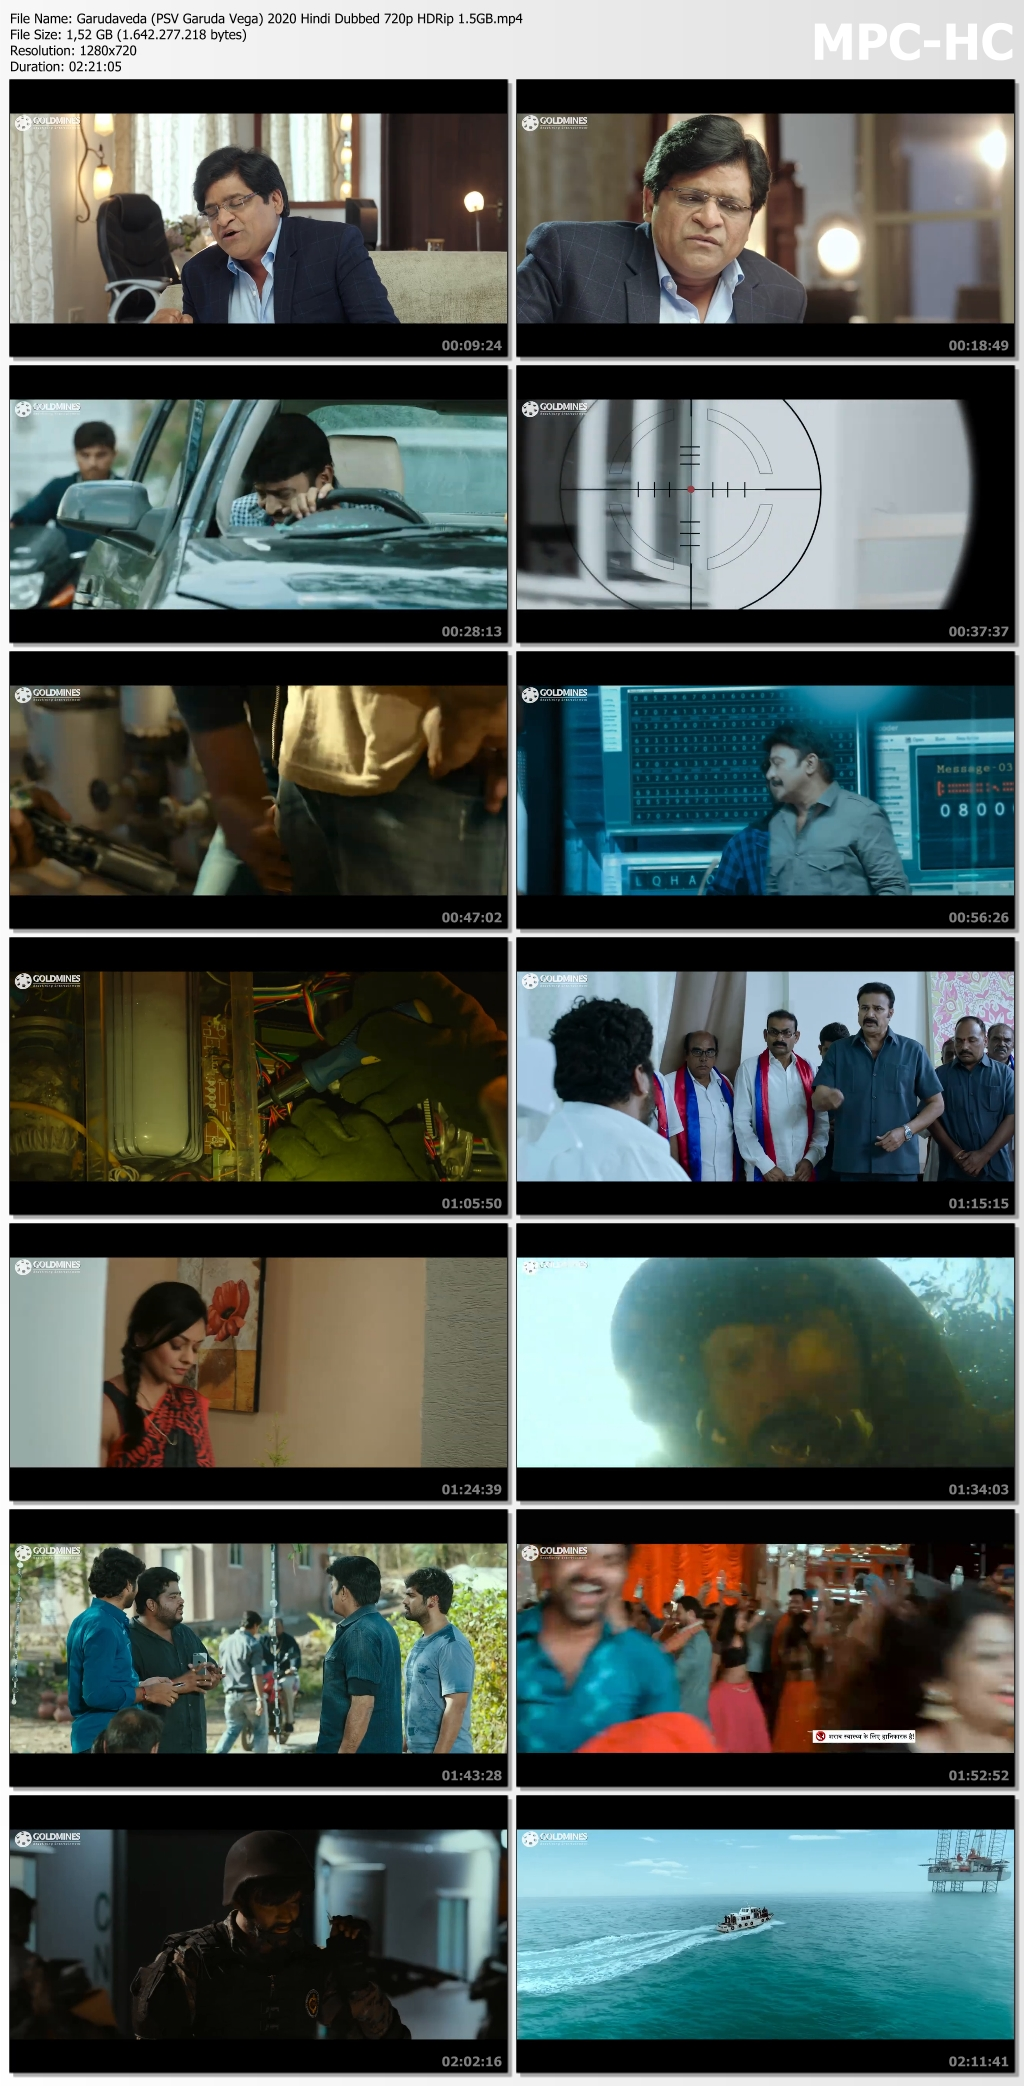 Garudaveda-PSV-Garuda-Vega-2020-Hindi-Dubbed-720p-HDRip-1-5-GB-mp4-thumbs